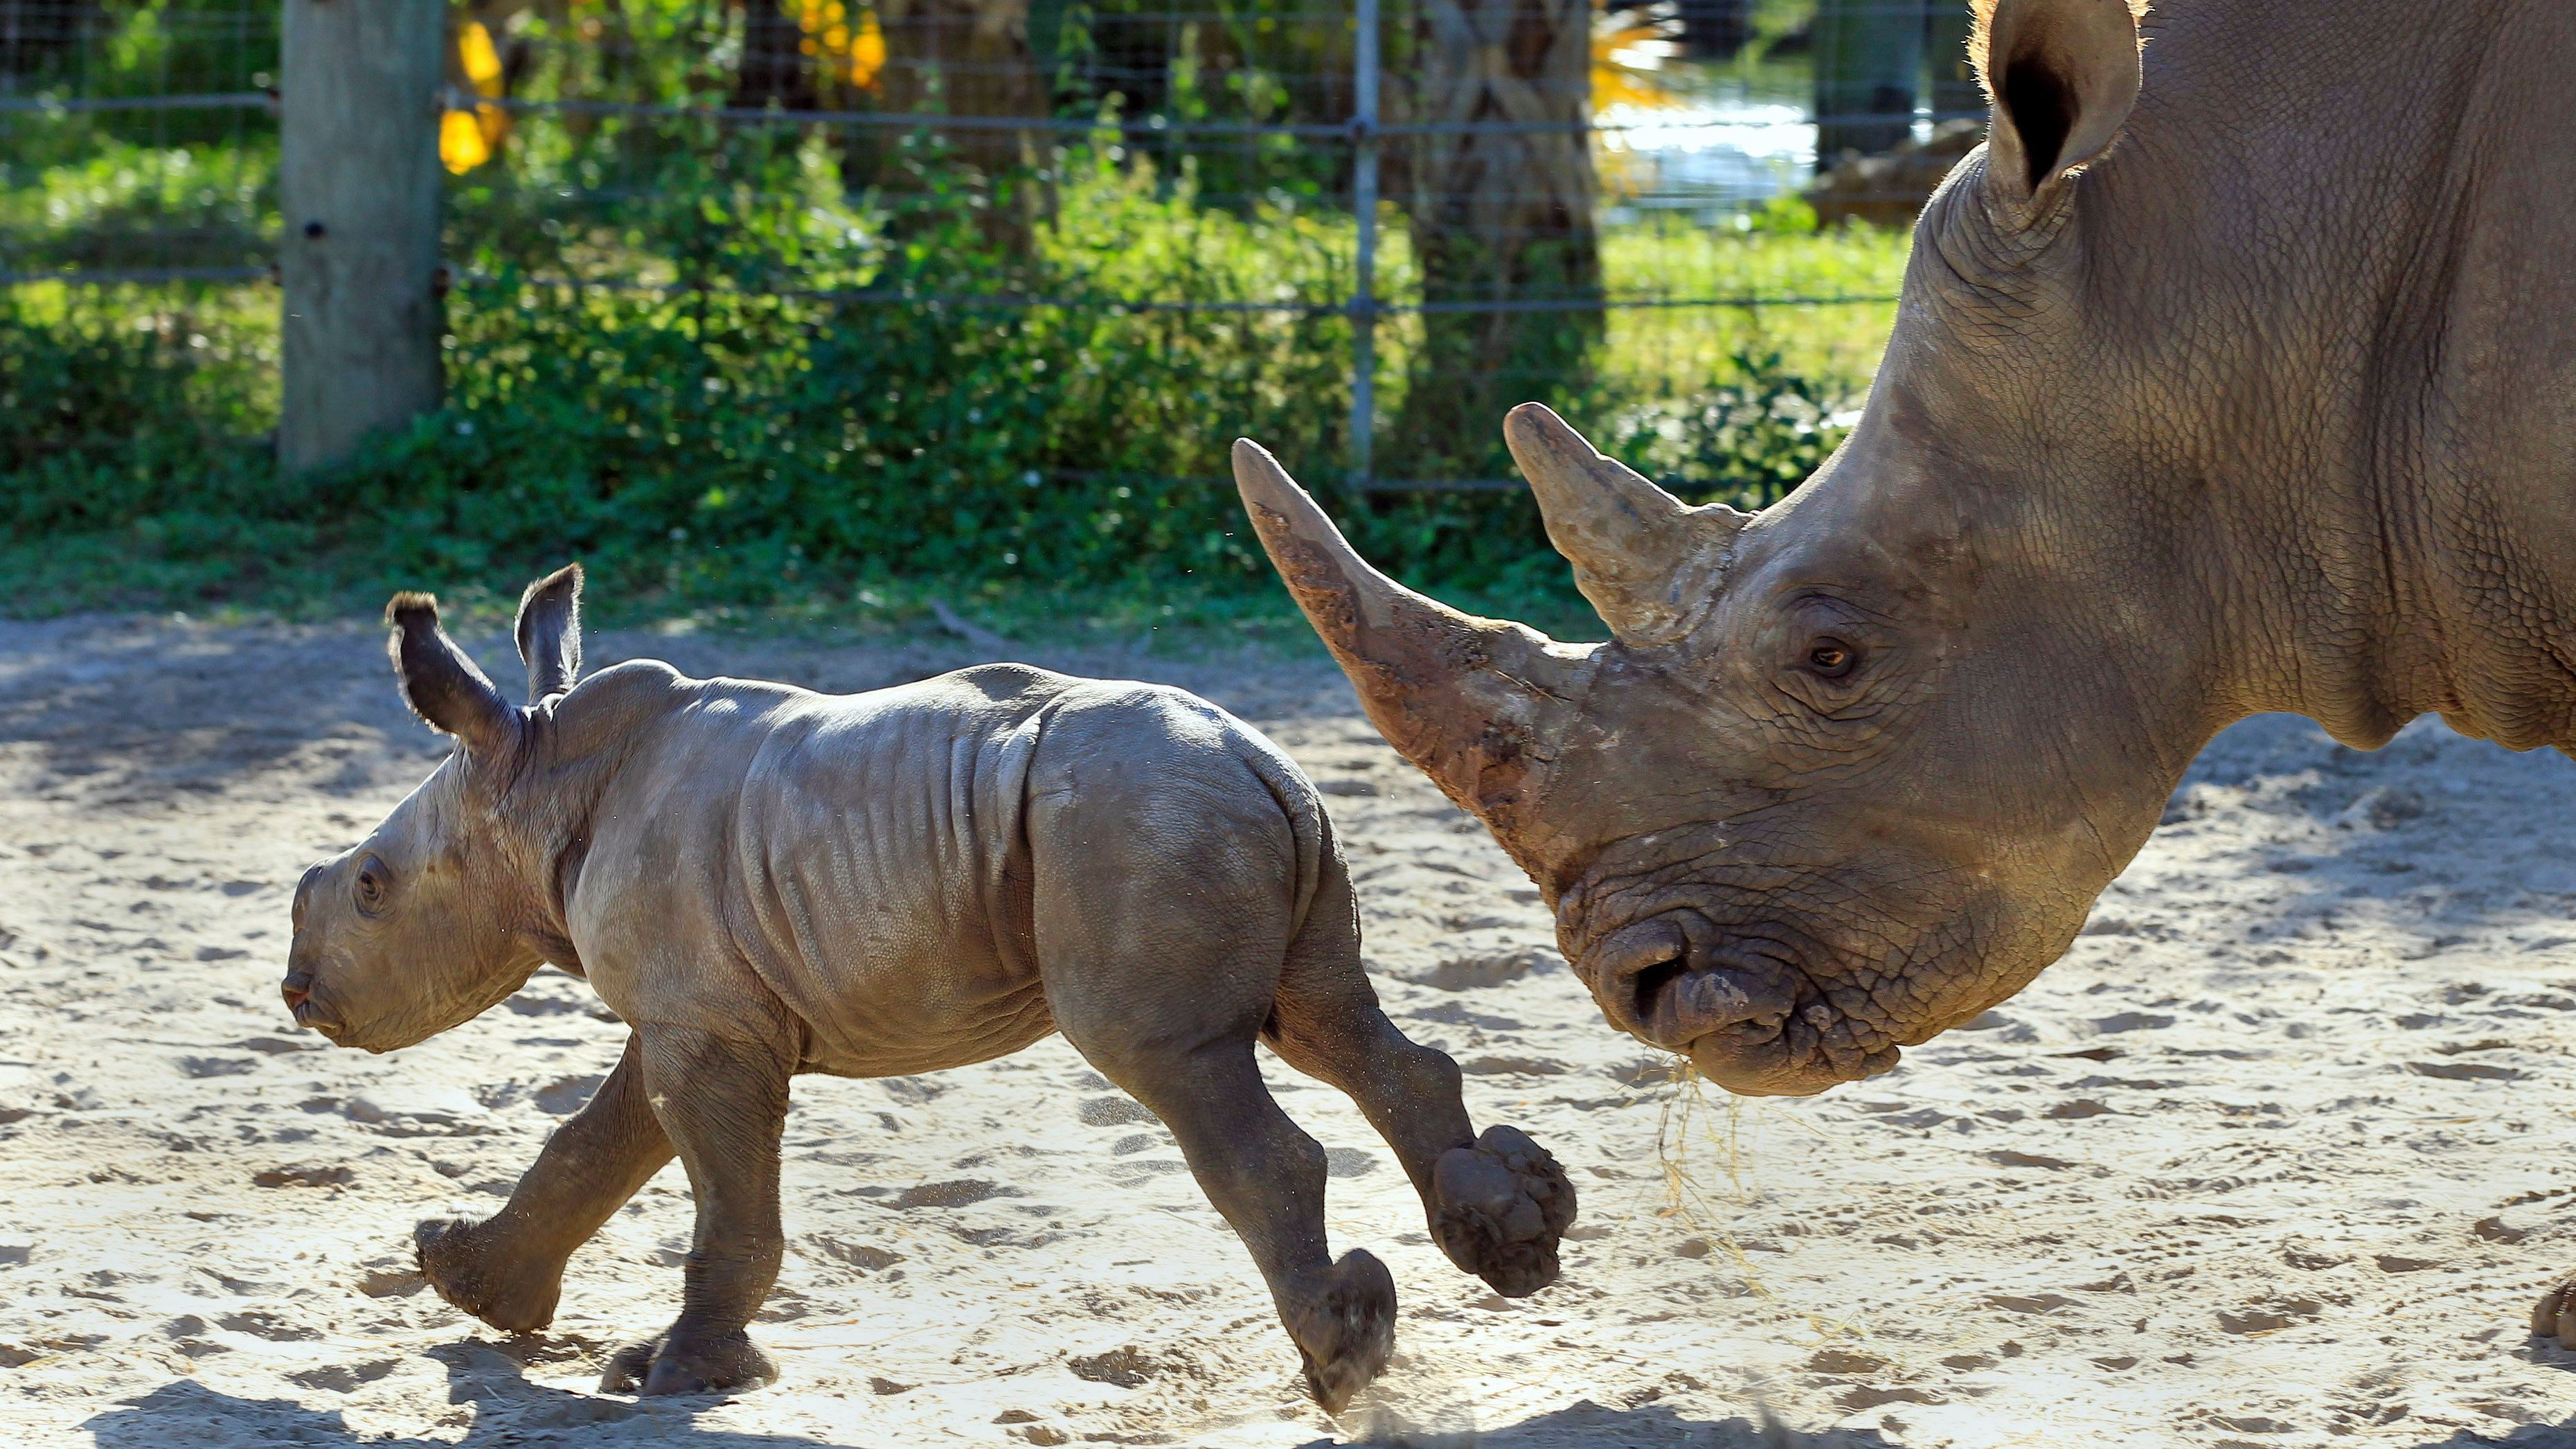 Kidogo, a Southern White Rhinoceros, keeps an eye on her one-week-old calf as the newborn runs Wednesday, Dec. 14, 2011, at Tampa's Lowry Park Zoo in Tampa, Fla. The zoo has launched a naming contest for the baby rhino on it's Facebook page. The contest ends Dec. 23, 2011, in order for the newborn to have her name for Christmas.